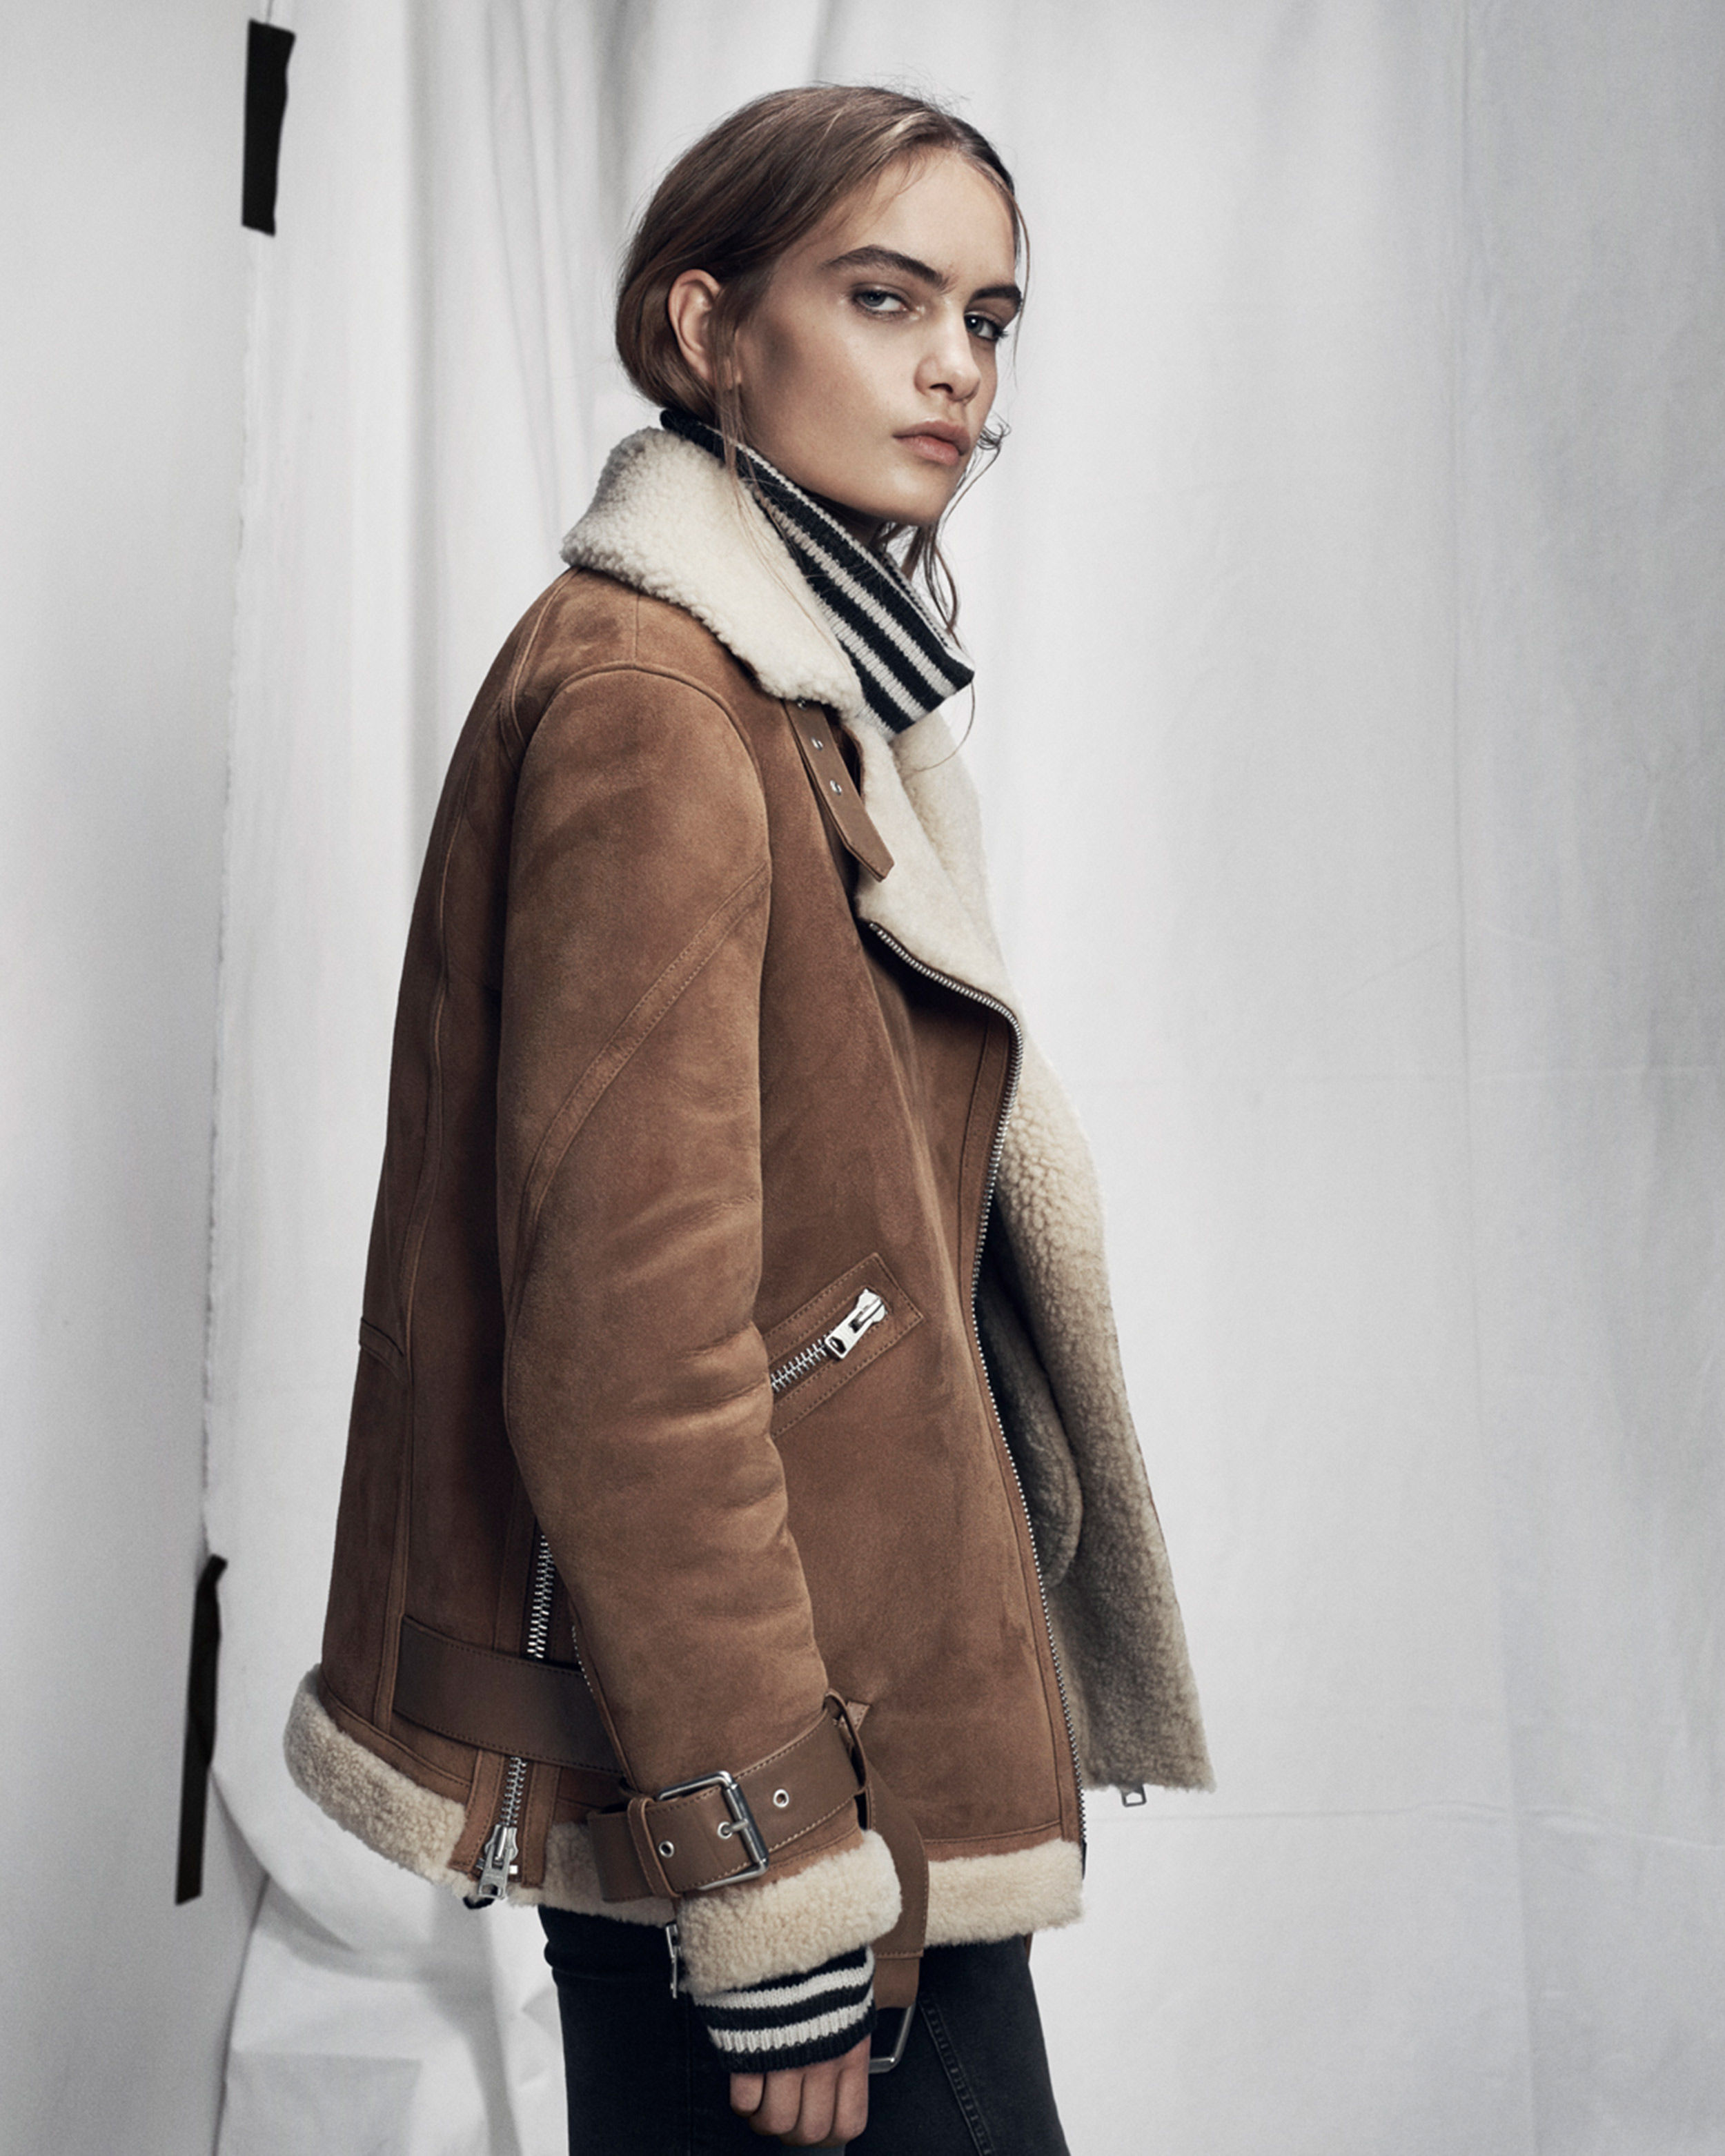 Lookbook image of a woman standing and wearing a brown shearling jacket over a funnel neck striped jumper.